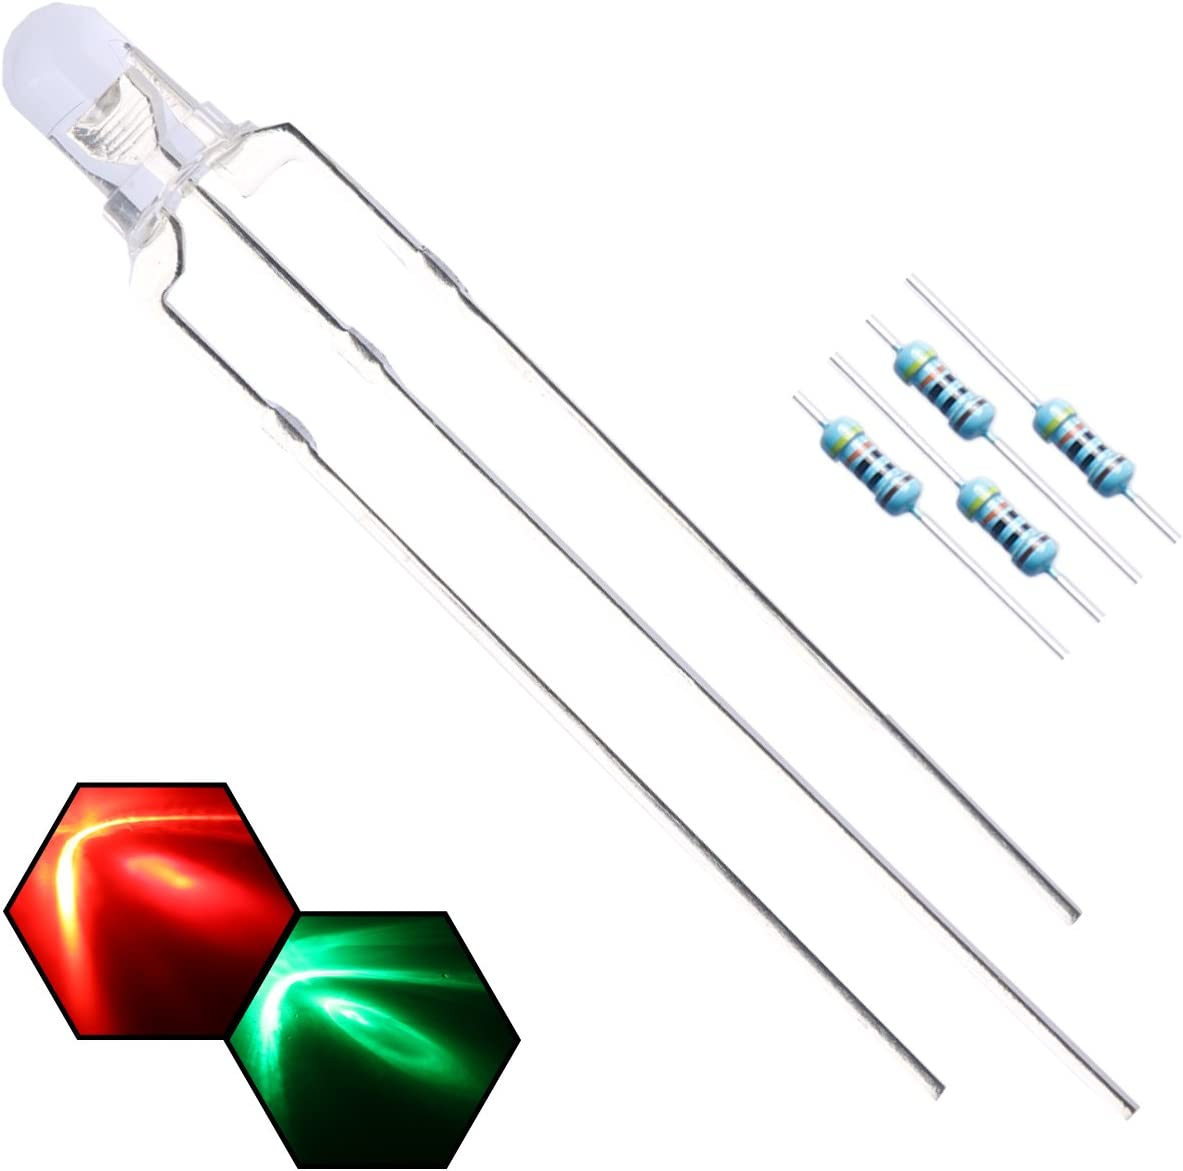 Color: Fog Type Anode Laliva 100PCS 3MM LED Common anode Red /& Green light emitting diode F3 led Common cathode 3pin 3P Transparent//Fog positive negative